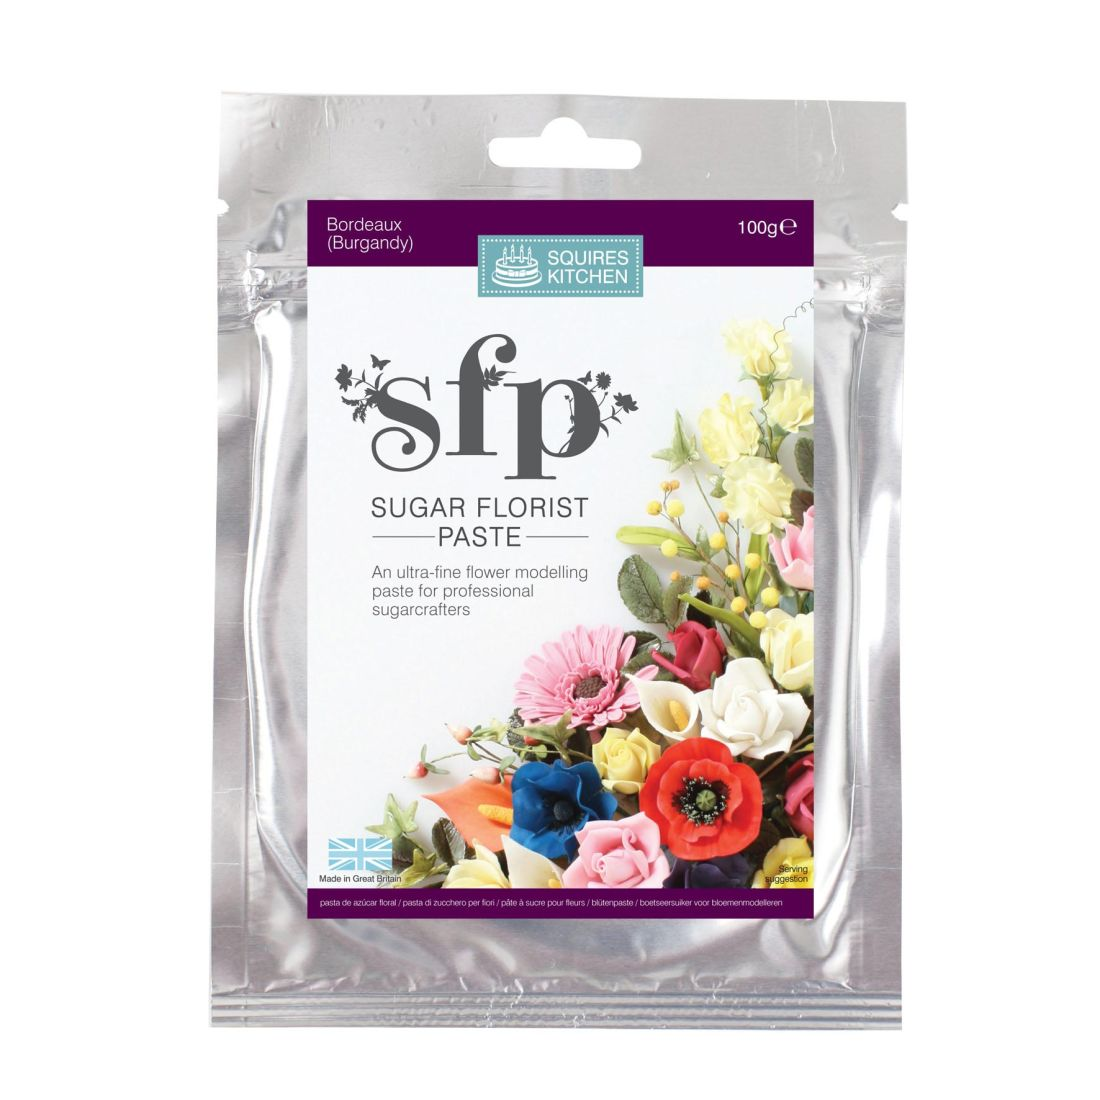 SK SFP Sugar Florist Paste Bordeaux Burgundy 100g | Squires Kitchen Shop